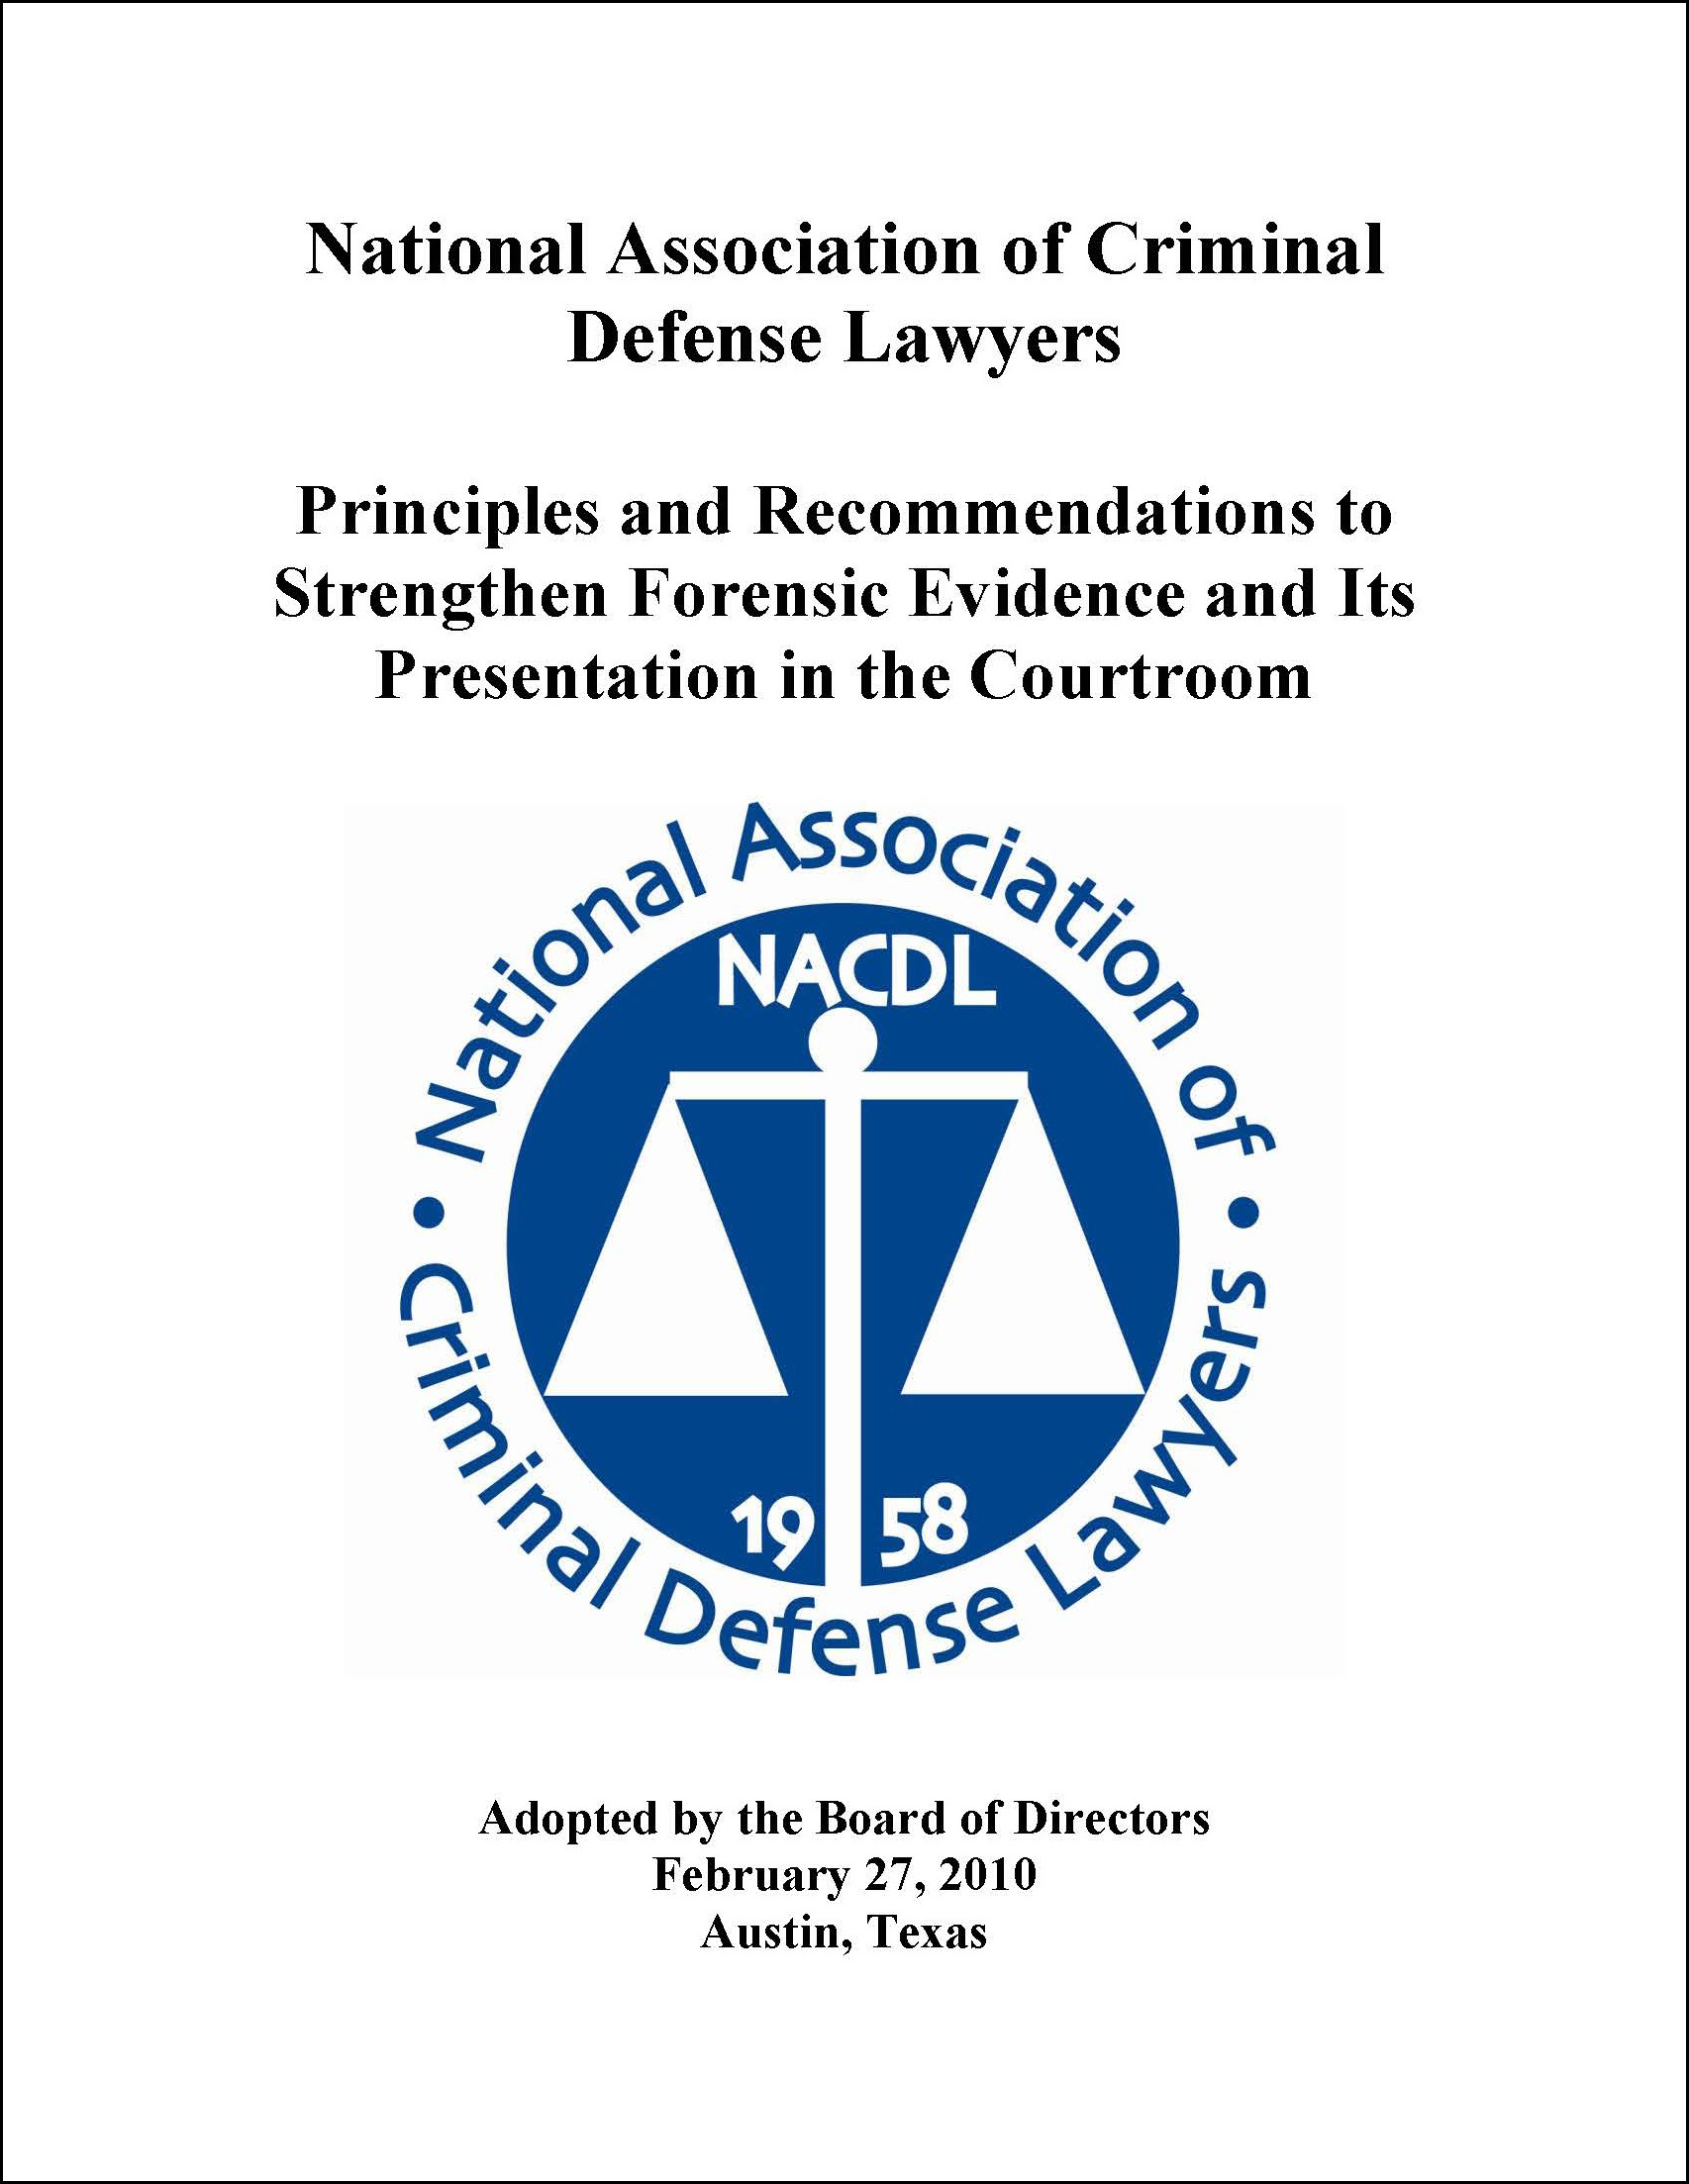 Nacdl Principles And Recommendations For Strengthening Forensic Science In The Courtroom